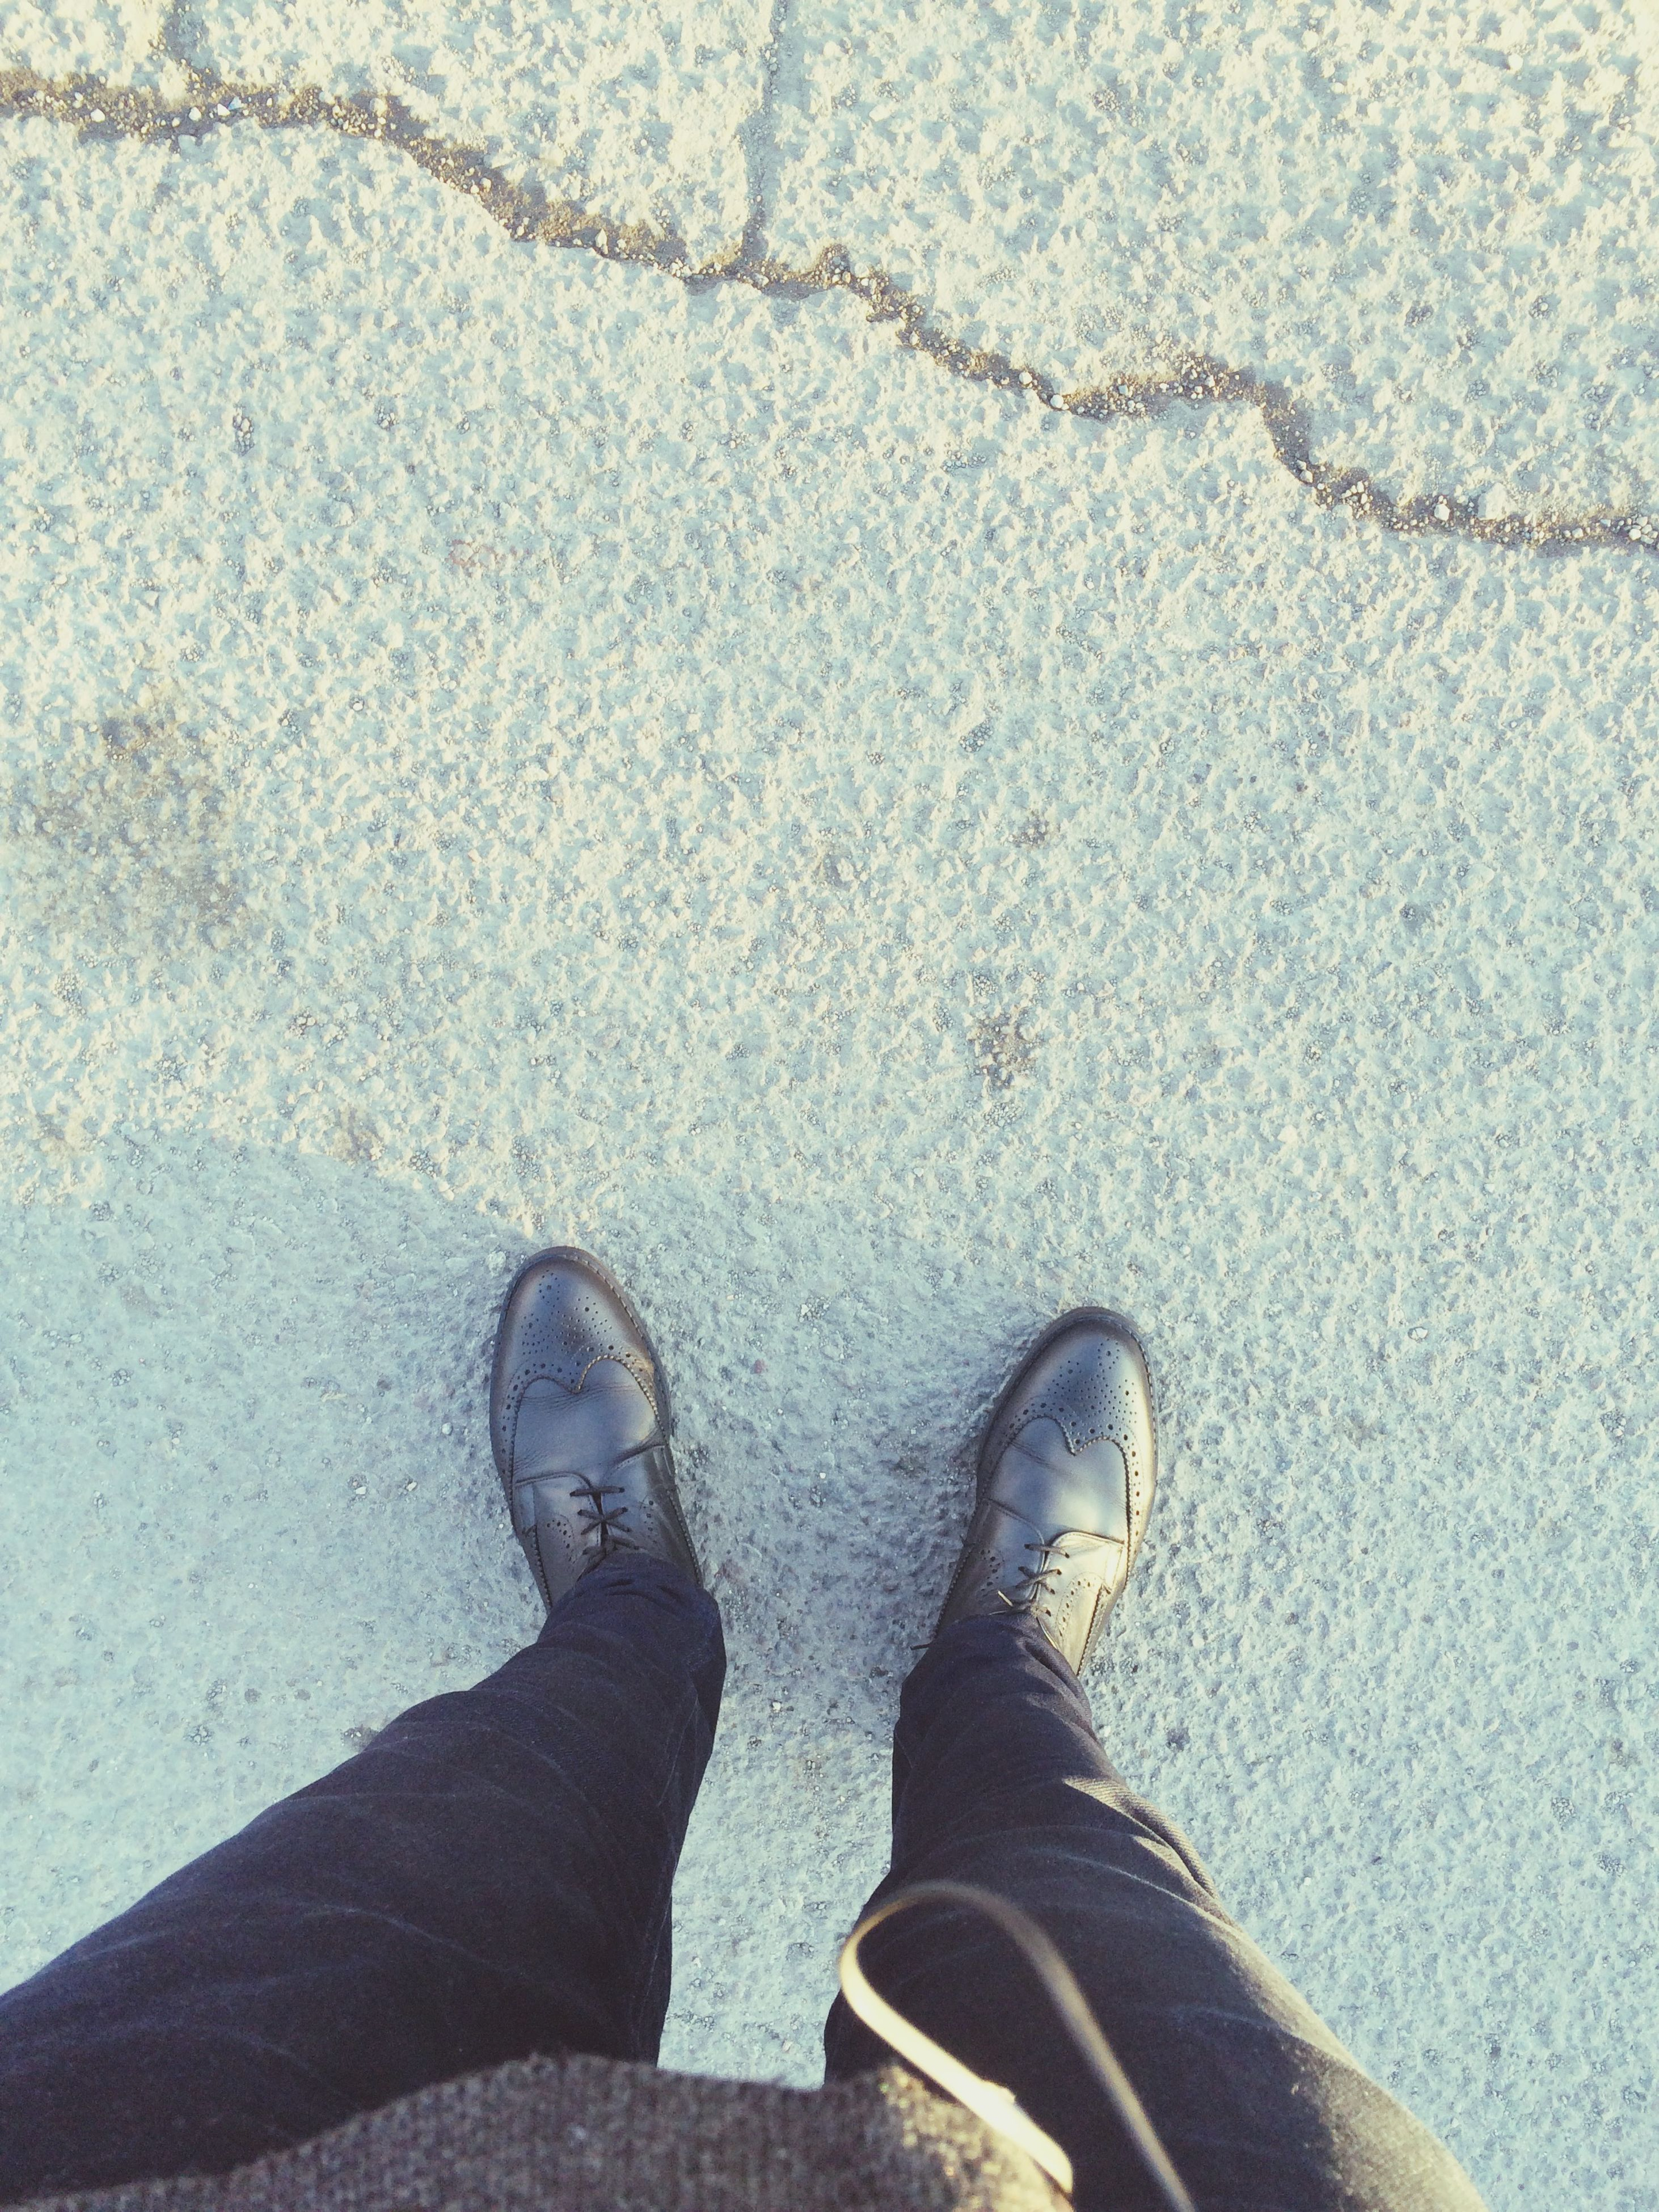 low section, person, personal perspective, shoe, standing, high angle view, lifestyles, human foot, footwear, street, men, leisure activity, shadow, directly above, jeans, unrecognizable person, road